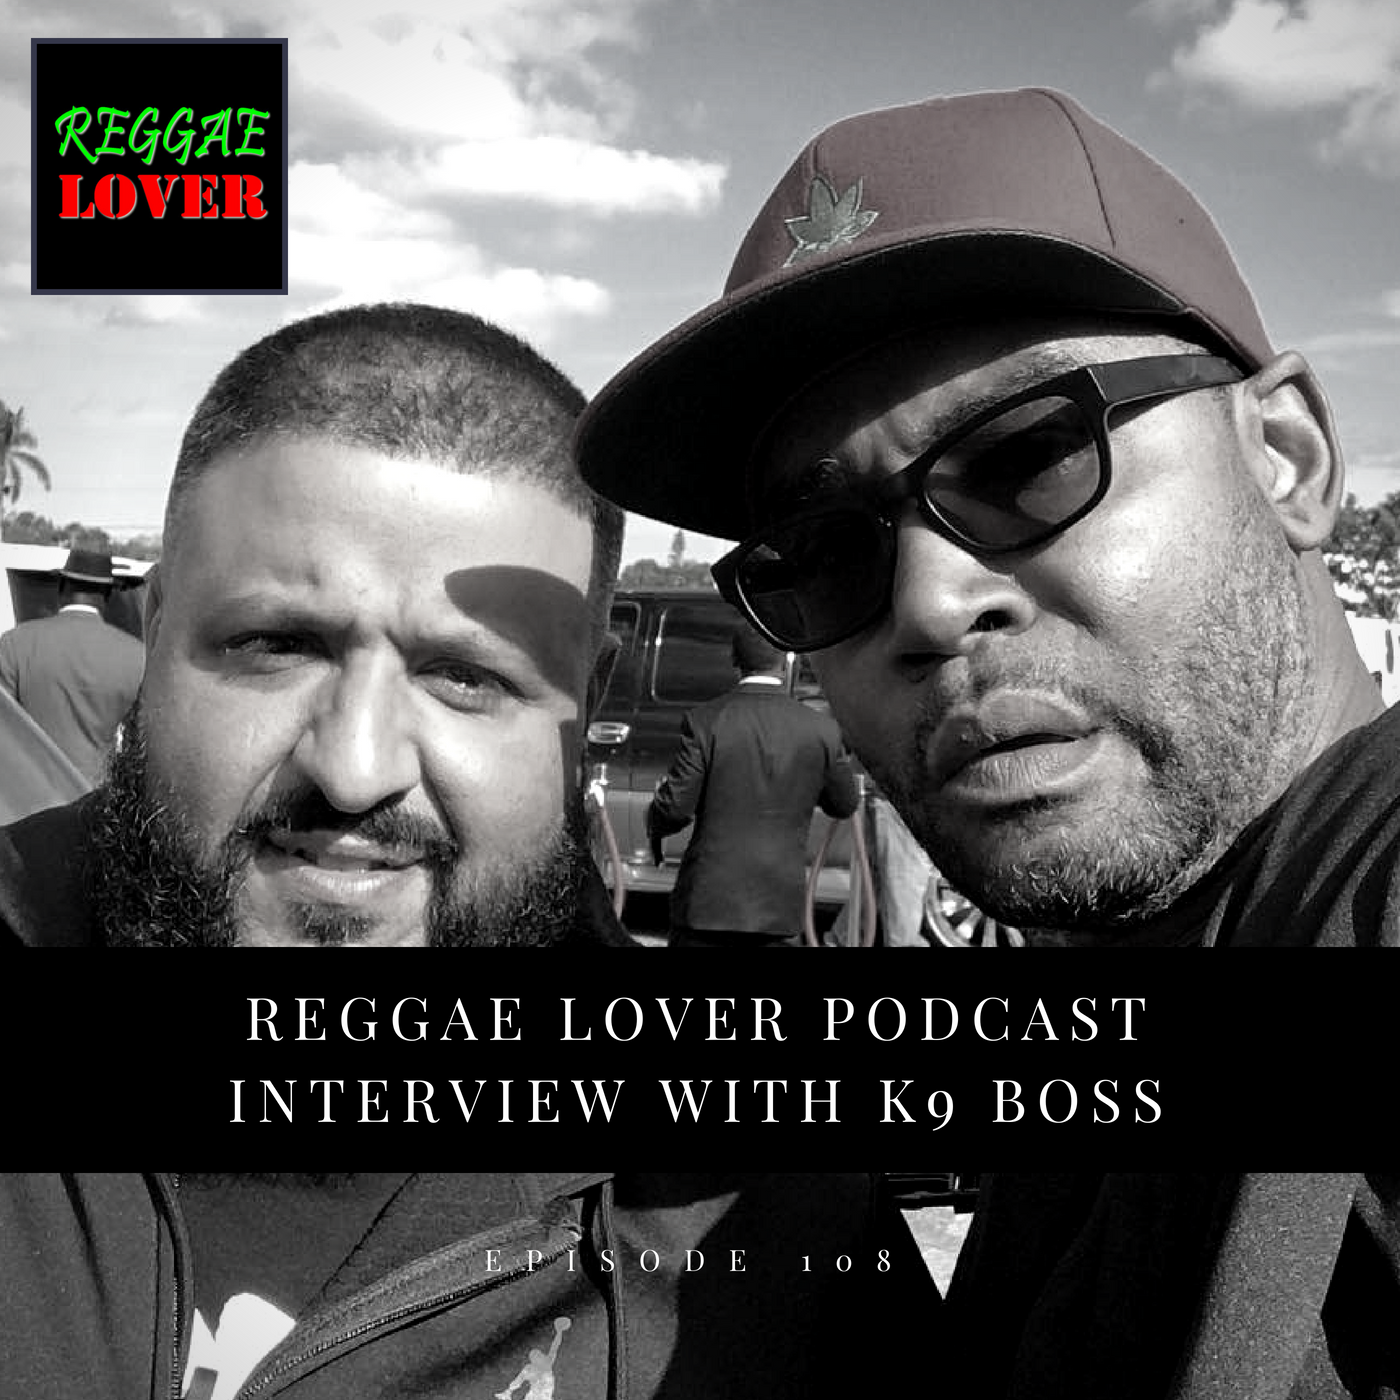 REGGAE LOVER and MASTER DOGTRAINER🐕K9BOSS™️ is my Guest on this episode. Listen to find out the story of his #reggaelover journey.  Find more information on his world-class dog training solutions: ~www.atlk9.com ~678-360-8168 ~atlantak9solutions@gmail.com